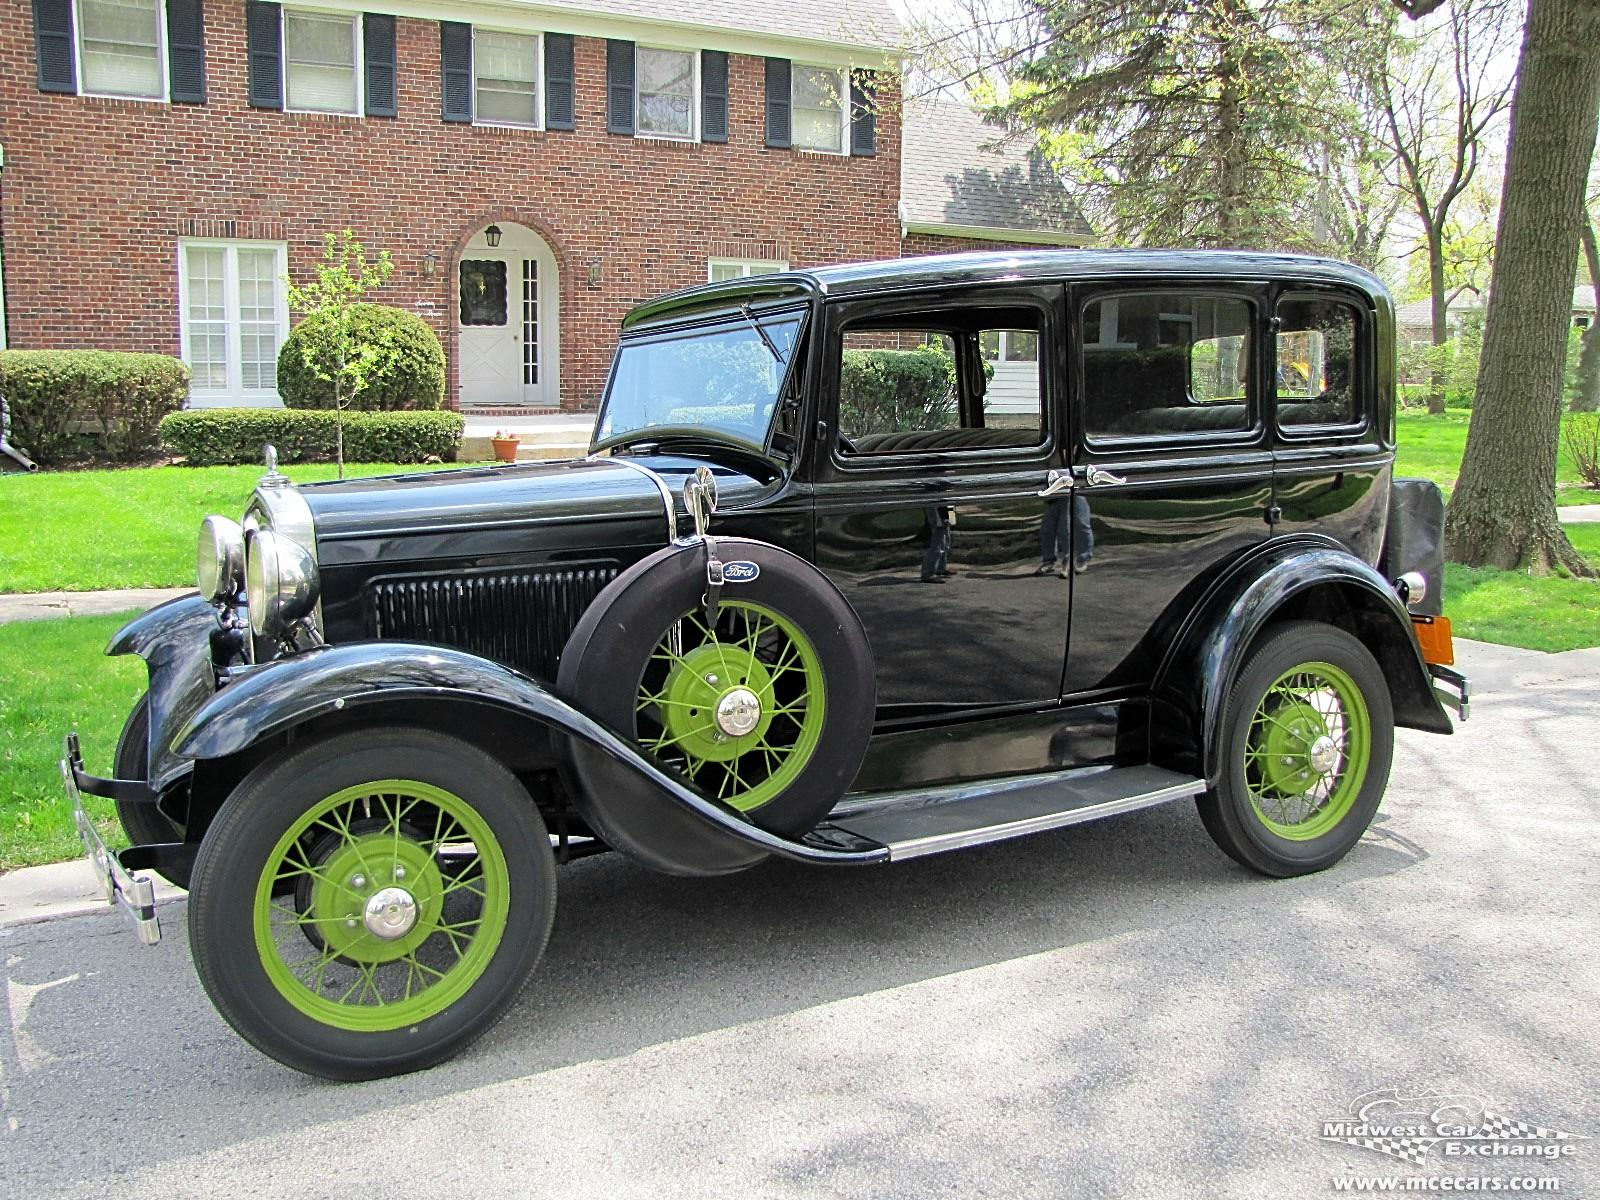 1931 Ford Model A Backgrounds, Compatible - PC, Mobile, Gadgets| 1600x1200 px